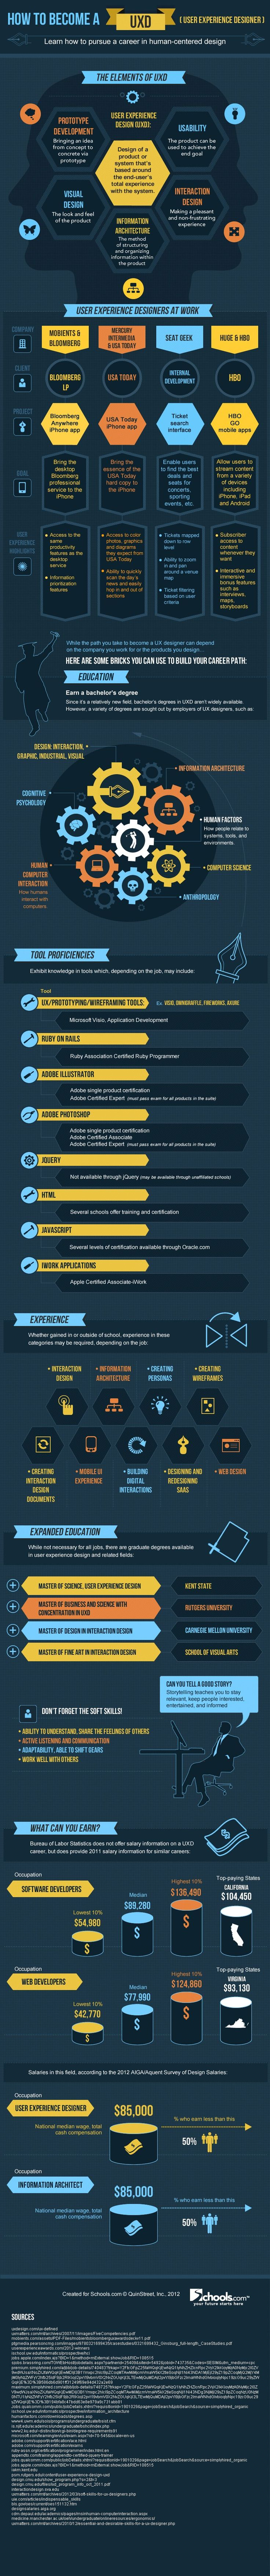 how to become ux designer11 How to Become a UX Designer Infographic